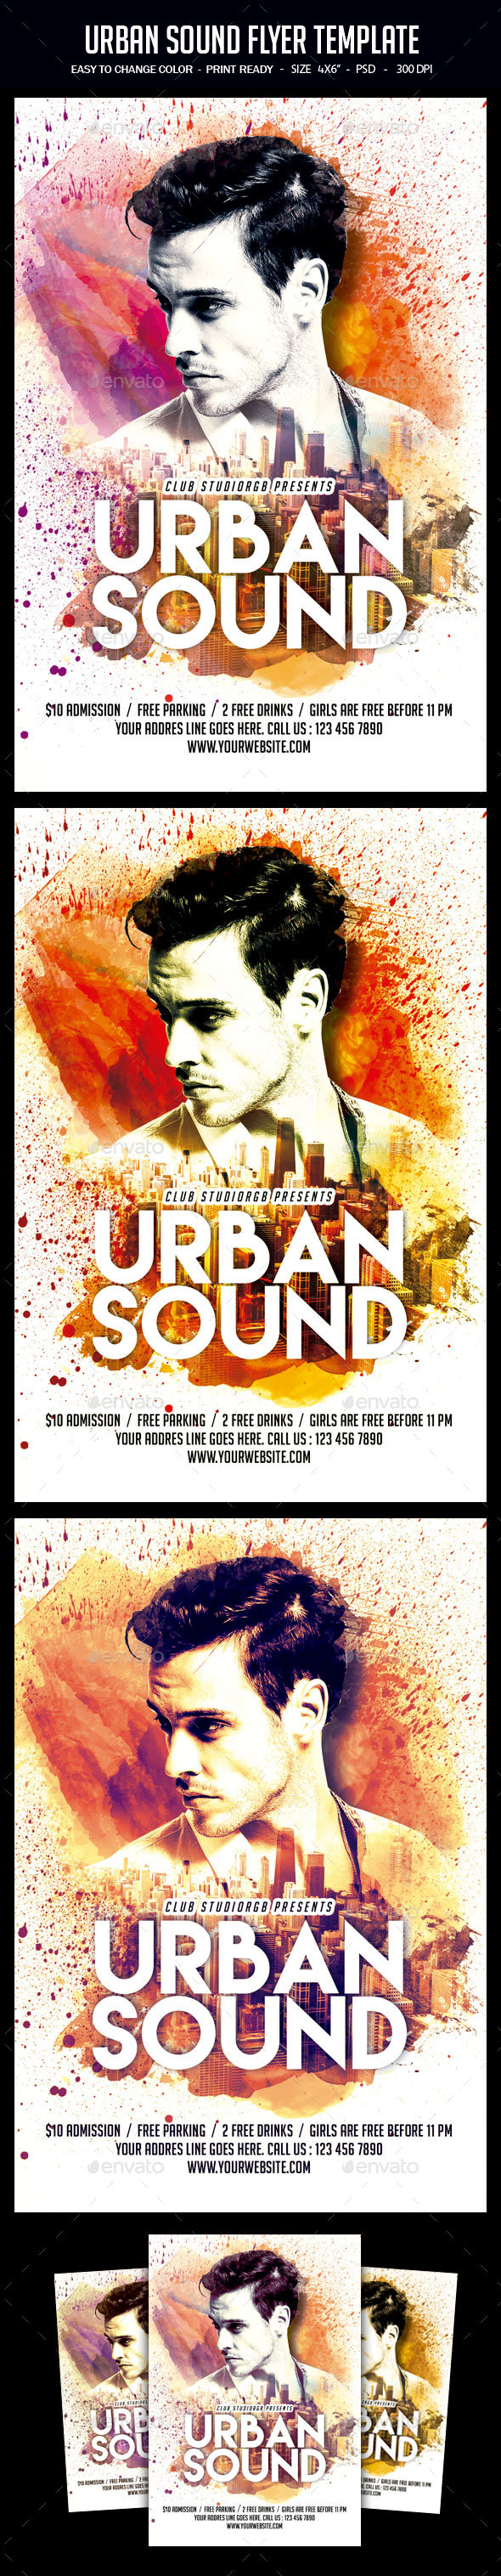 Urban Sound Flyer Template - Clubs & Parties Events